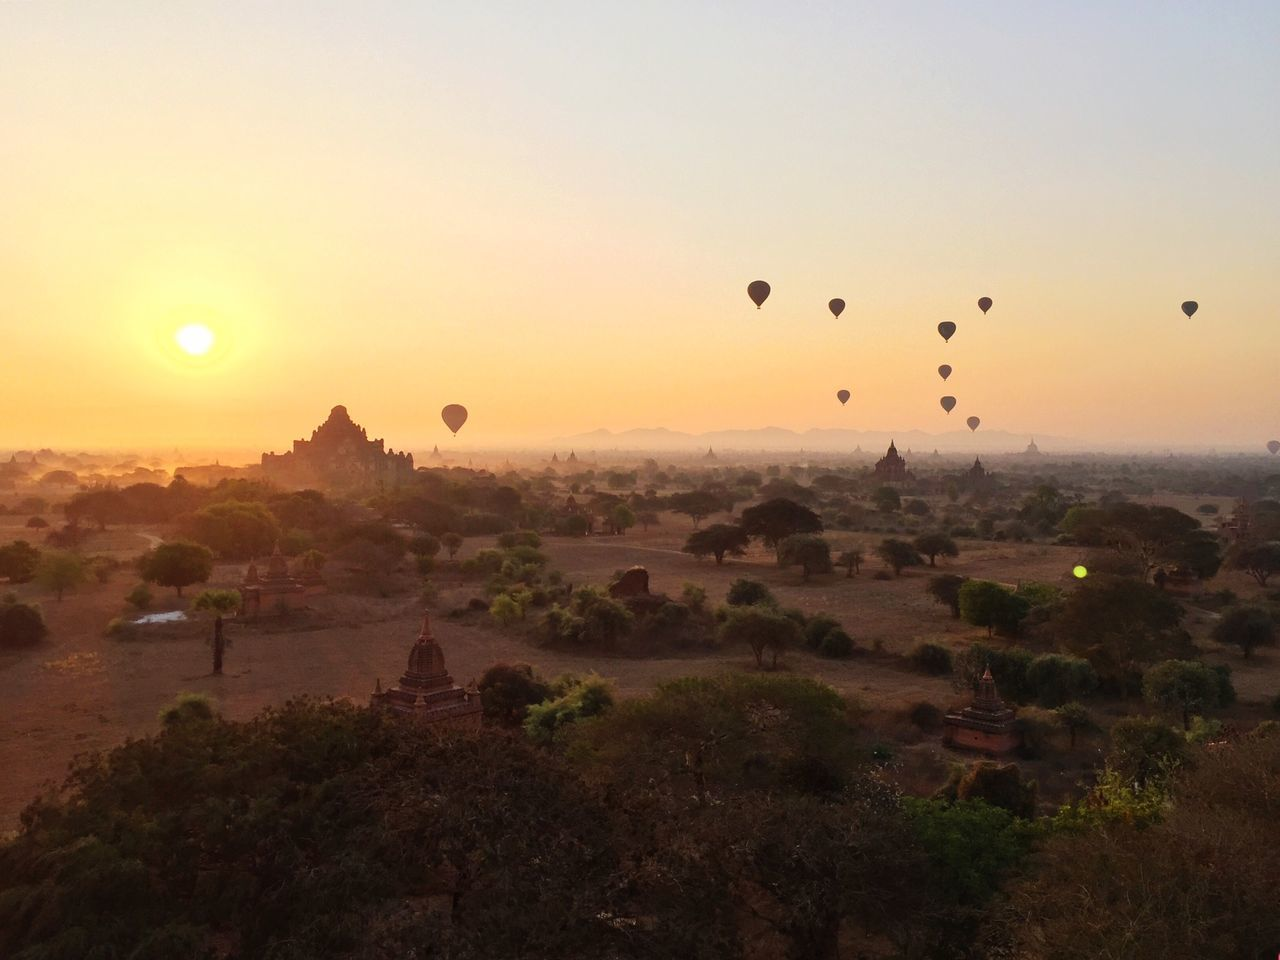 Stupas and hot air balloons during sunset